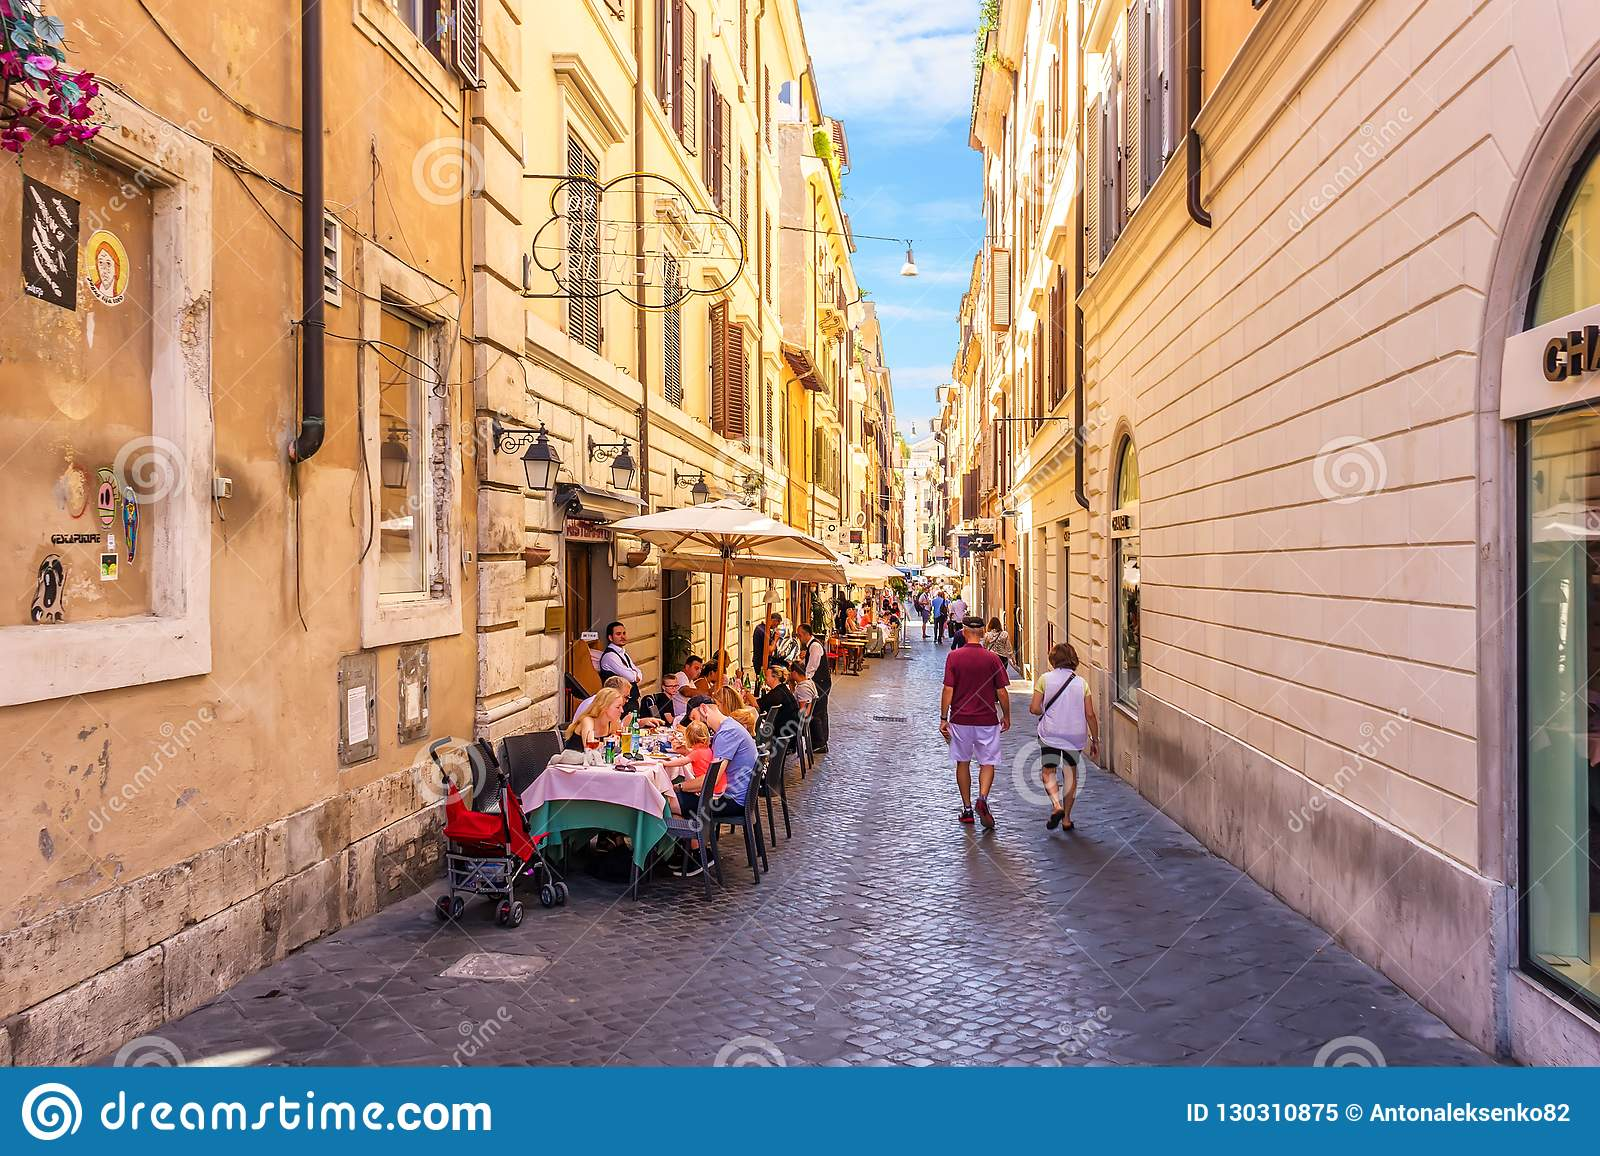 Italy street cafe in Rome street Via delle Carrozze near the Chanel boutique